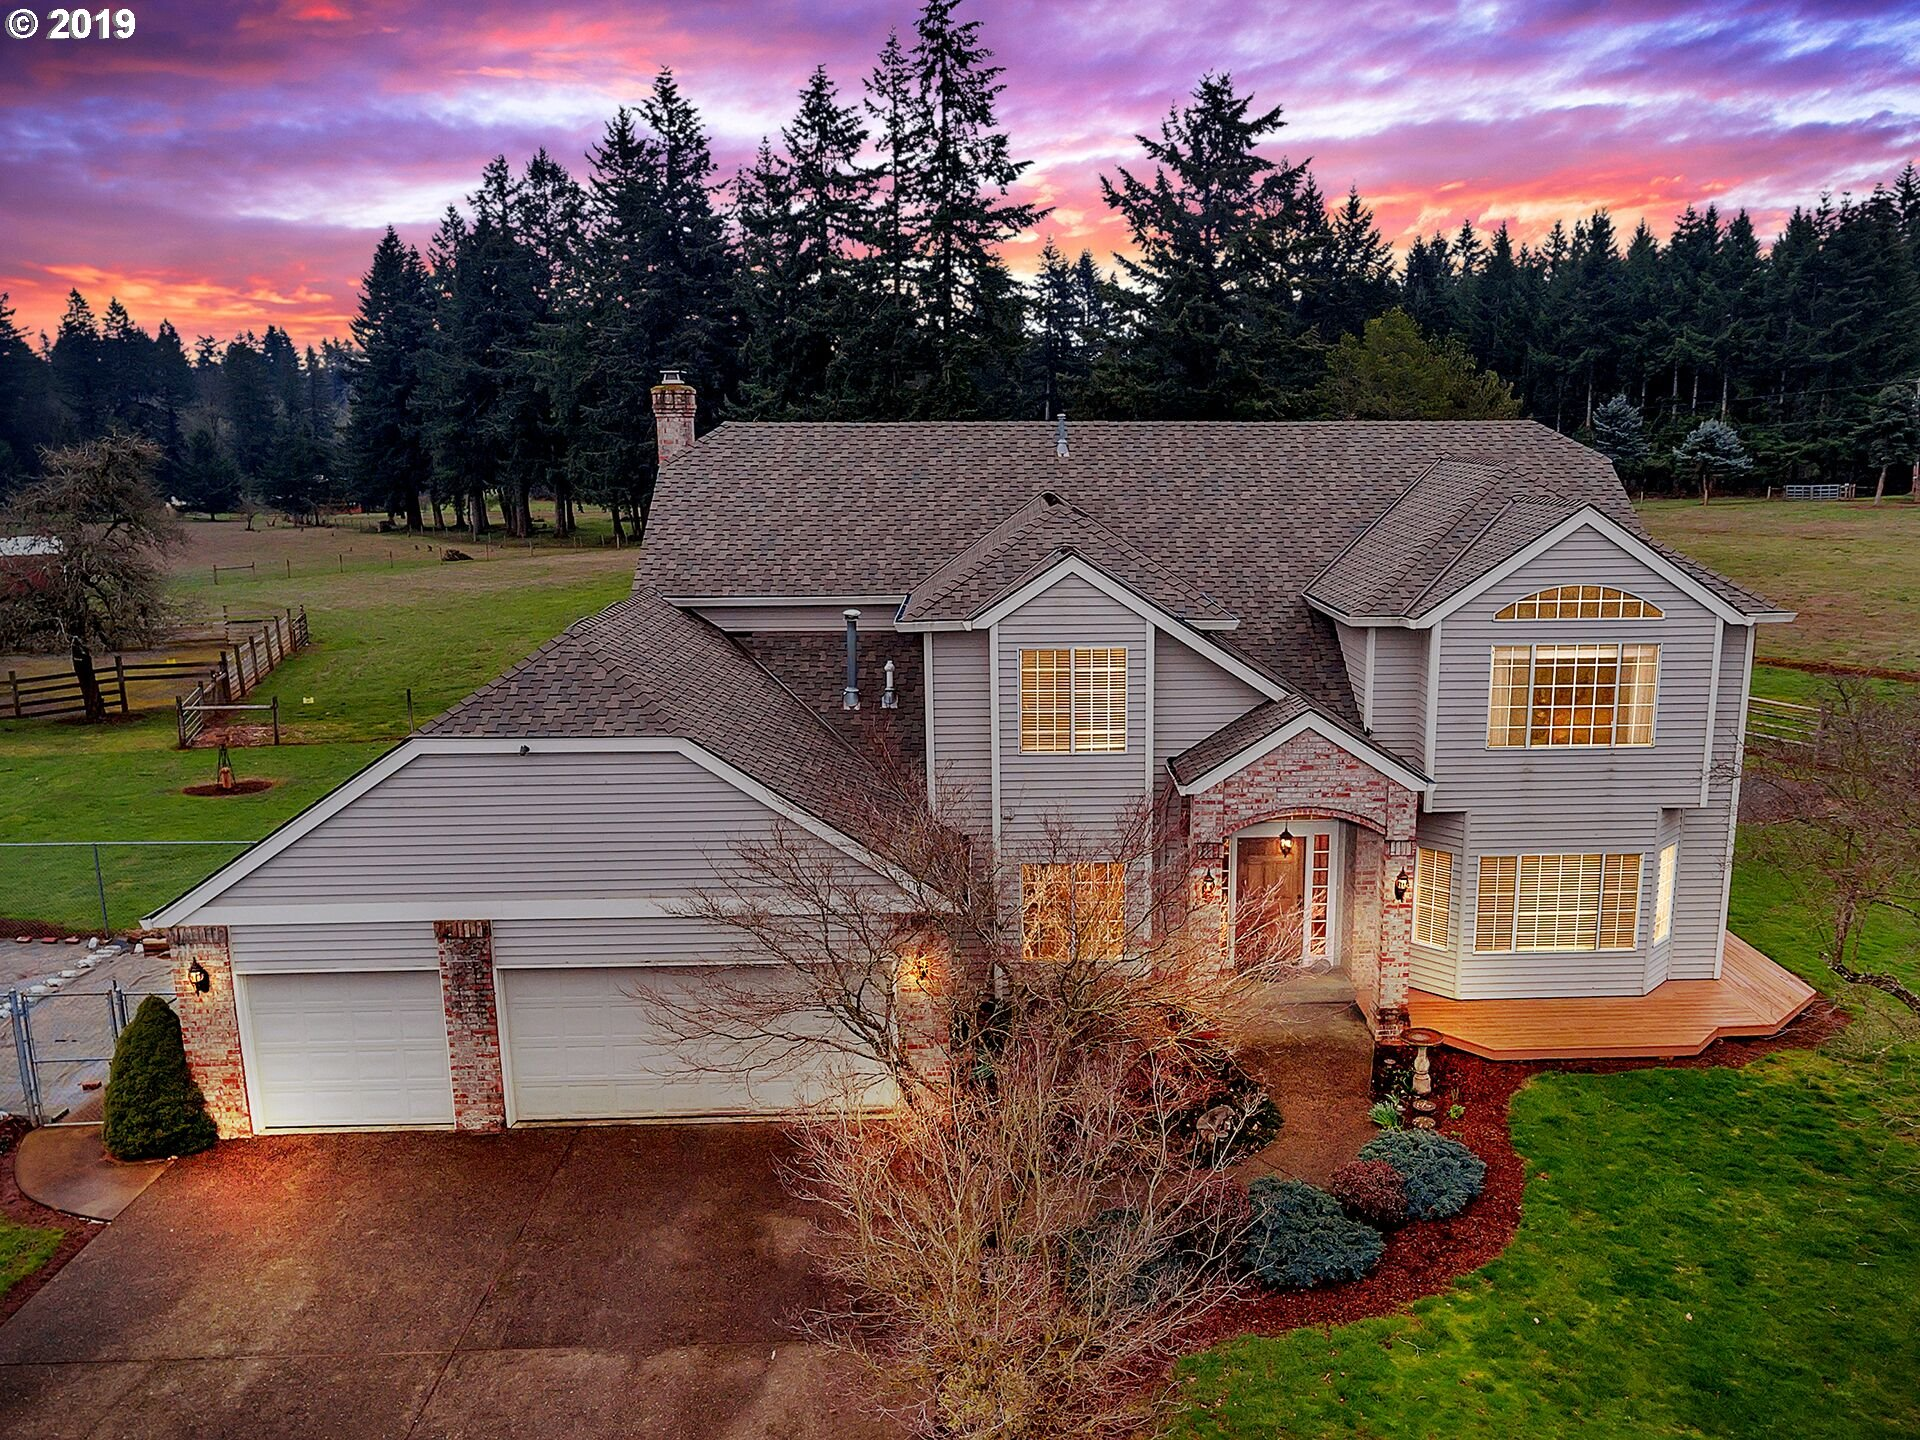 Fantastic Equestrian estate! Spacious custom built home on nearly 10 level pasture acres! Quiet private road leads to your country oasis, lovingly cared for home is awaiting your family! Enjoy beautiful sunset views & cozy fire pit/entertainment area,barns/shops include 36X36 (concrete floor),36X18/12X24loaf shed- all fenced & cross fenced pastures.  Electrical/&pad for Hotwalker--Upgrades include craftsman woodworking,tile, oak marble